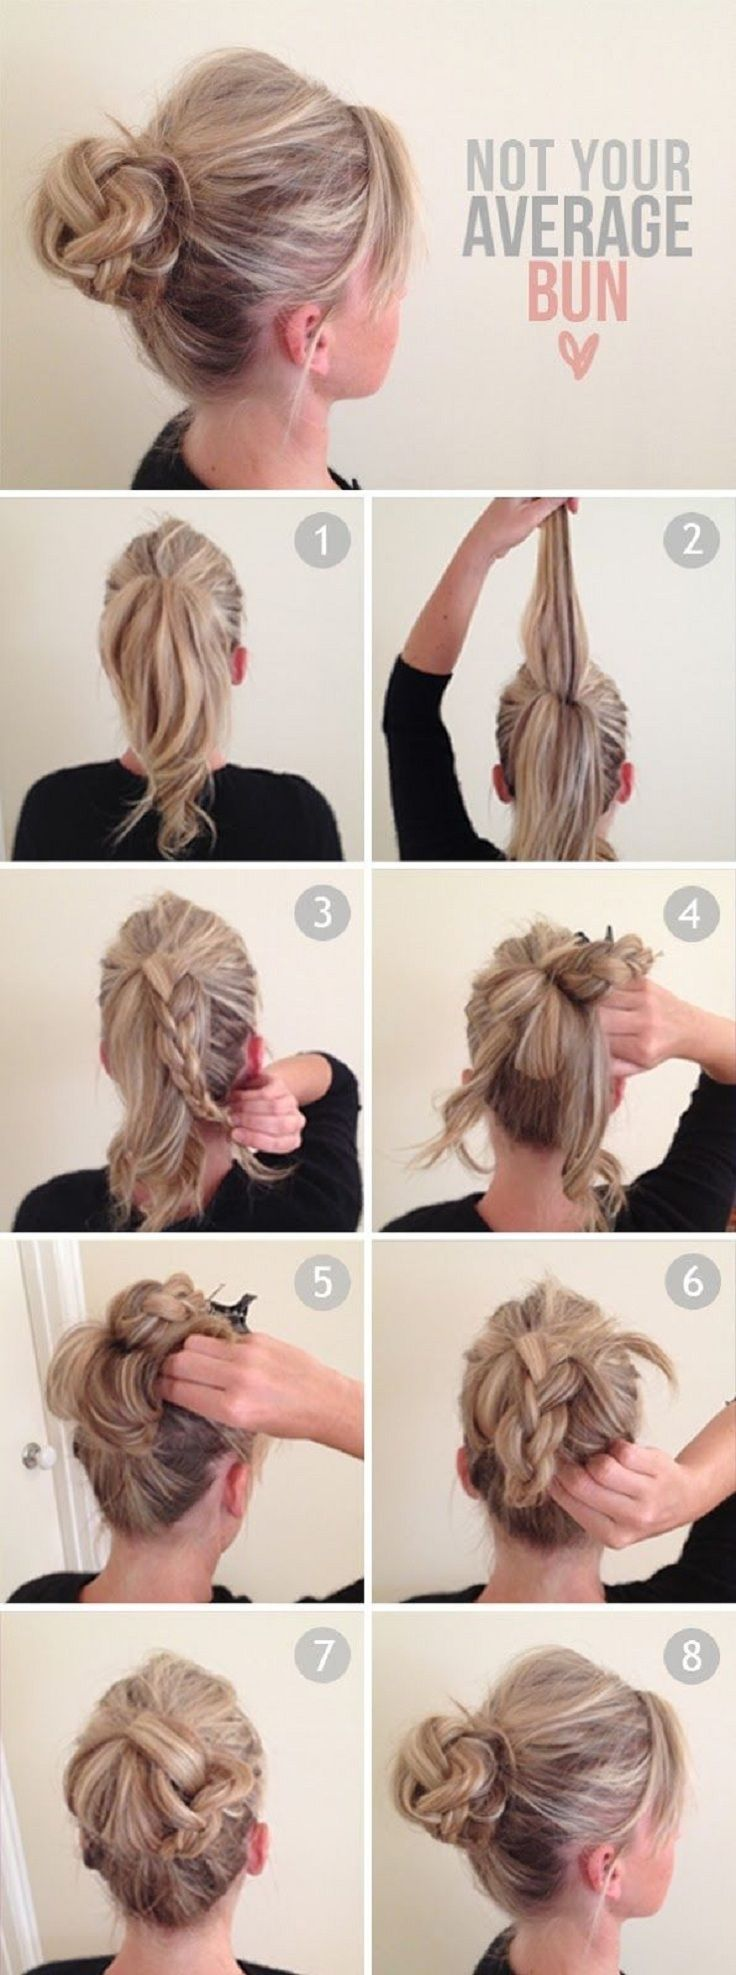 Stupendous 14 Amazing Double Braid Bun Hairstyles Pretty Designs Hairstyle Inspiration Daily Dogsangcom